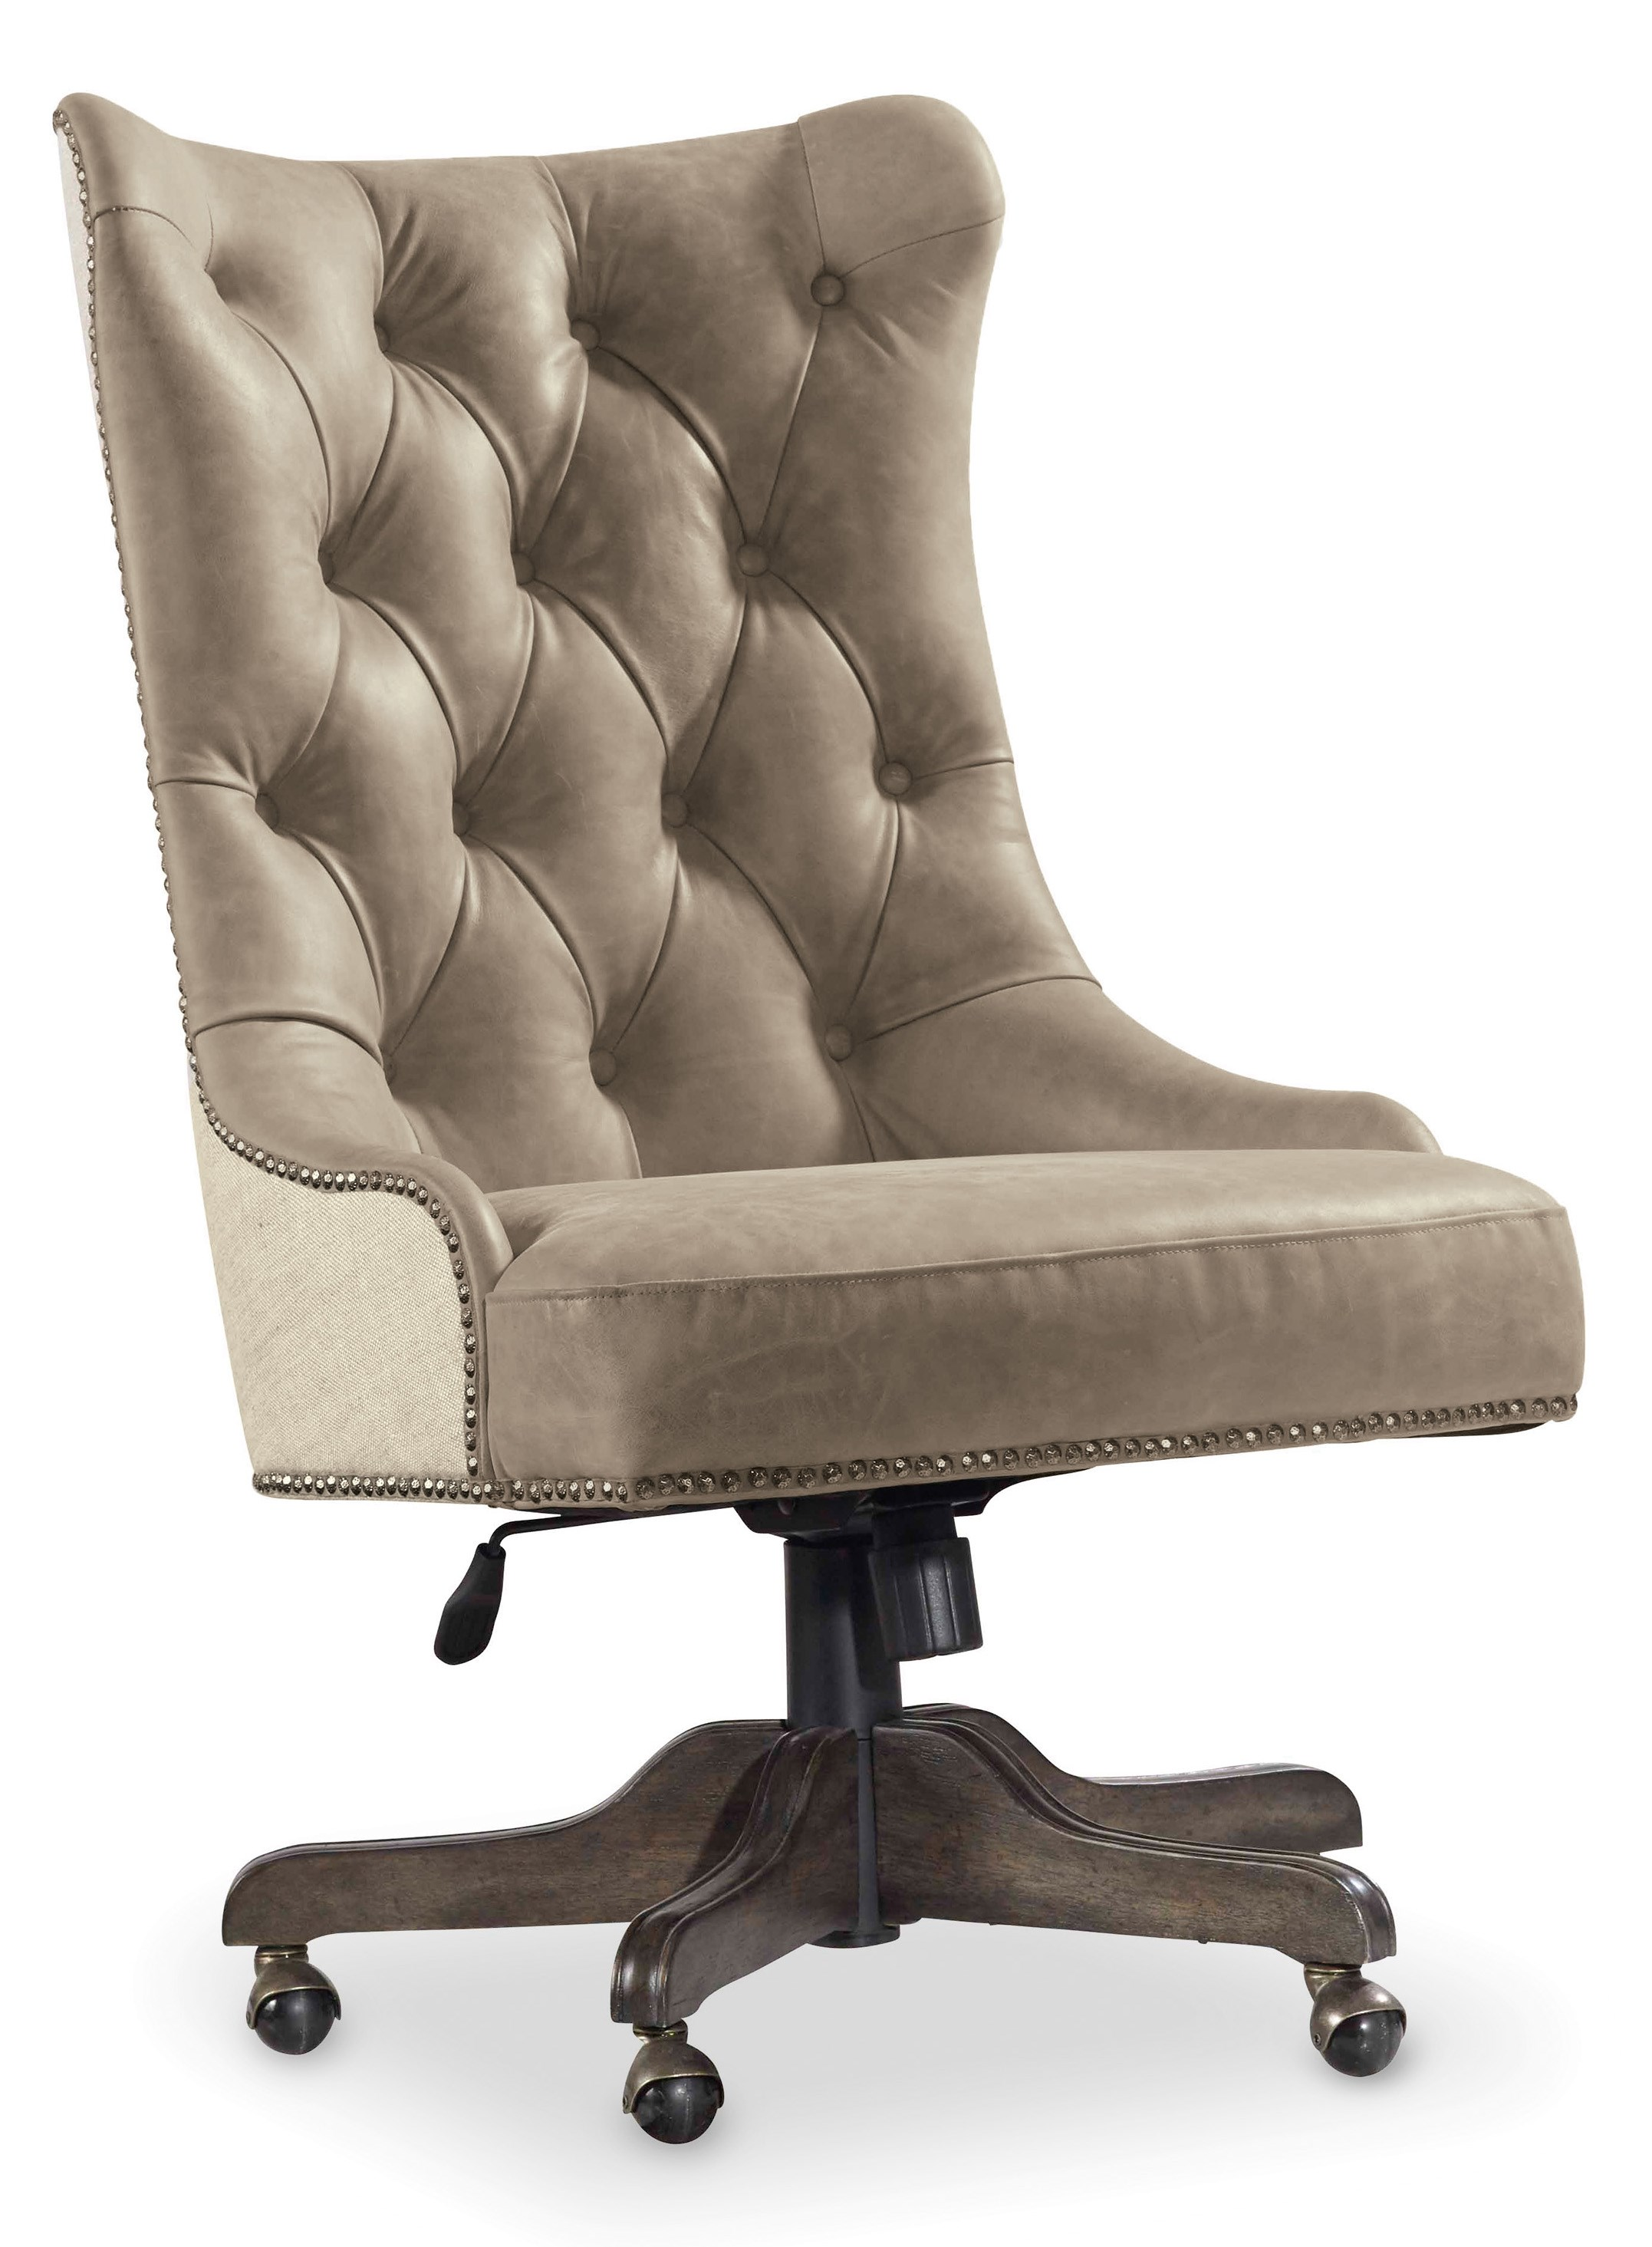 Grey Desk Chair Vintage West Executive Desk Chair With Tufted Back By Hooker Furniture At Belfort Furniture